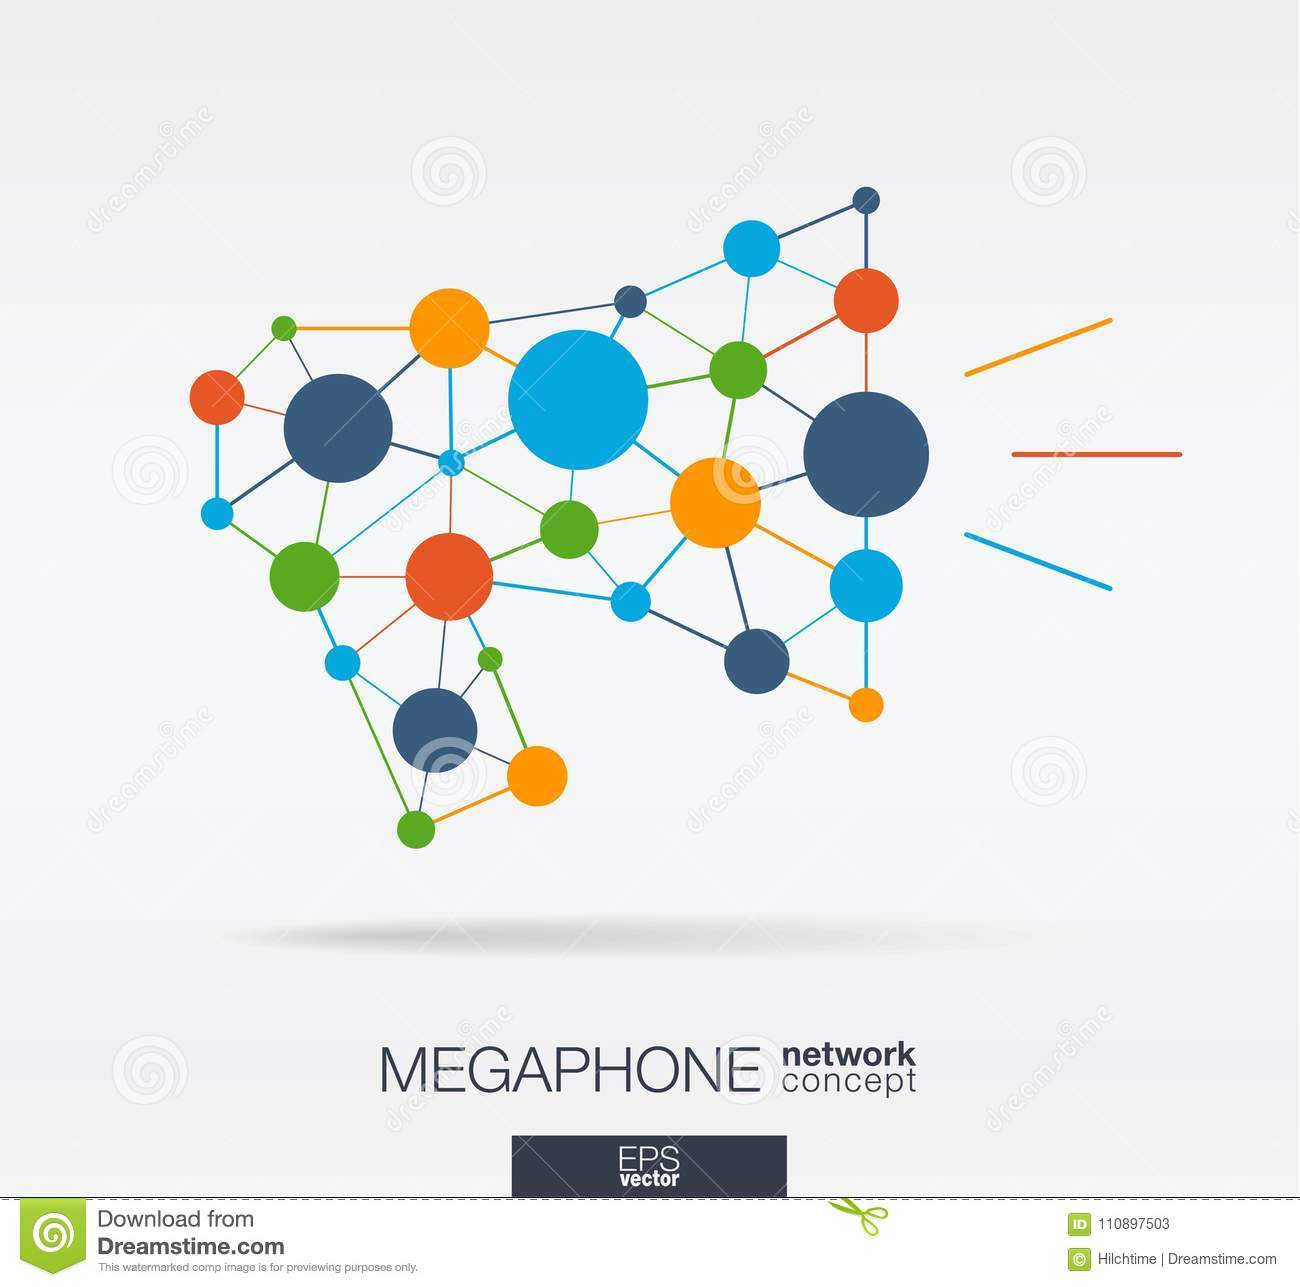 How to connect unlimited Internet on Megaphone 44